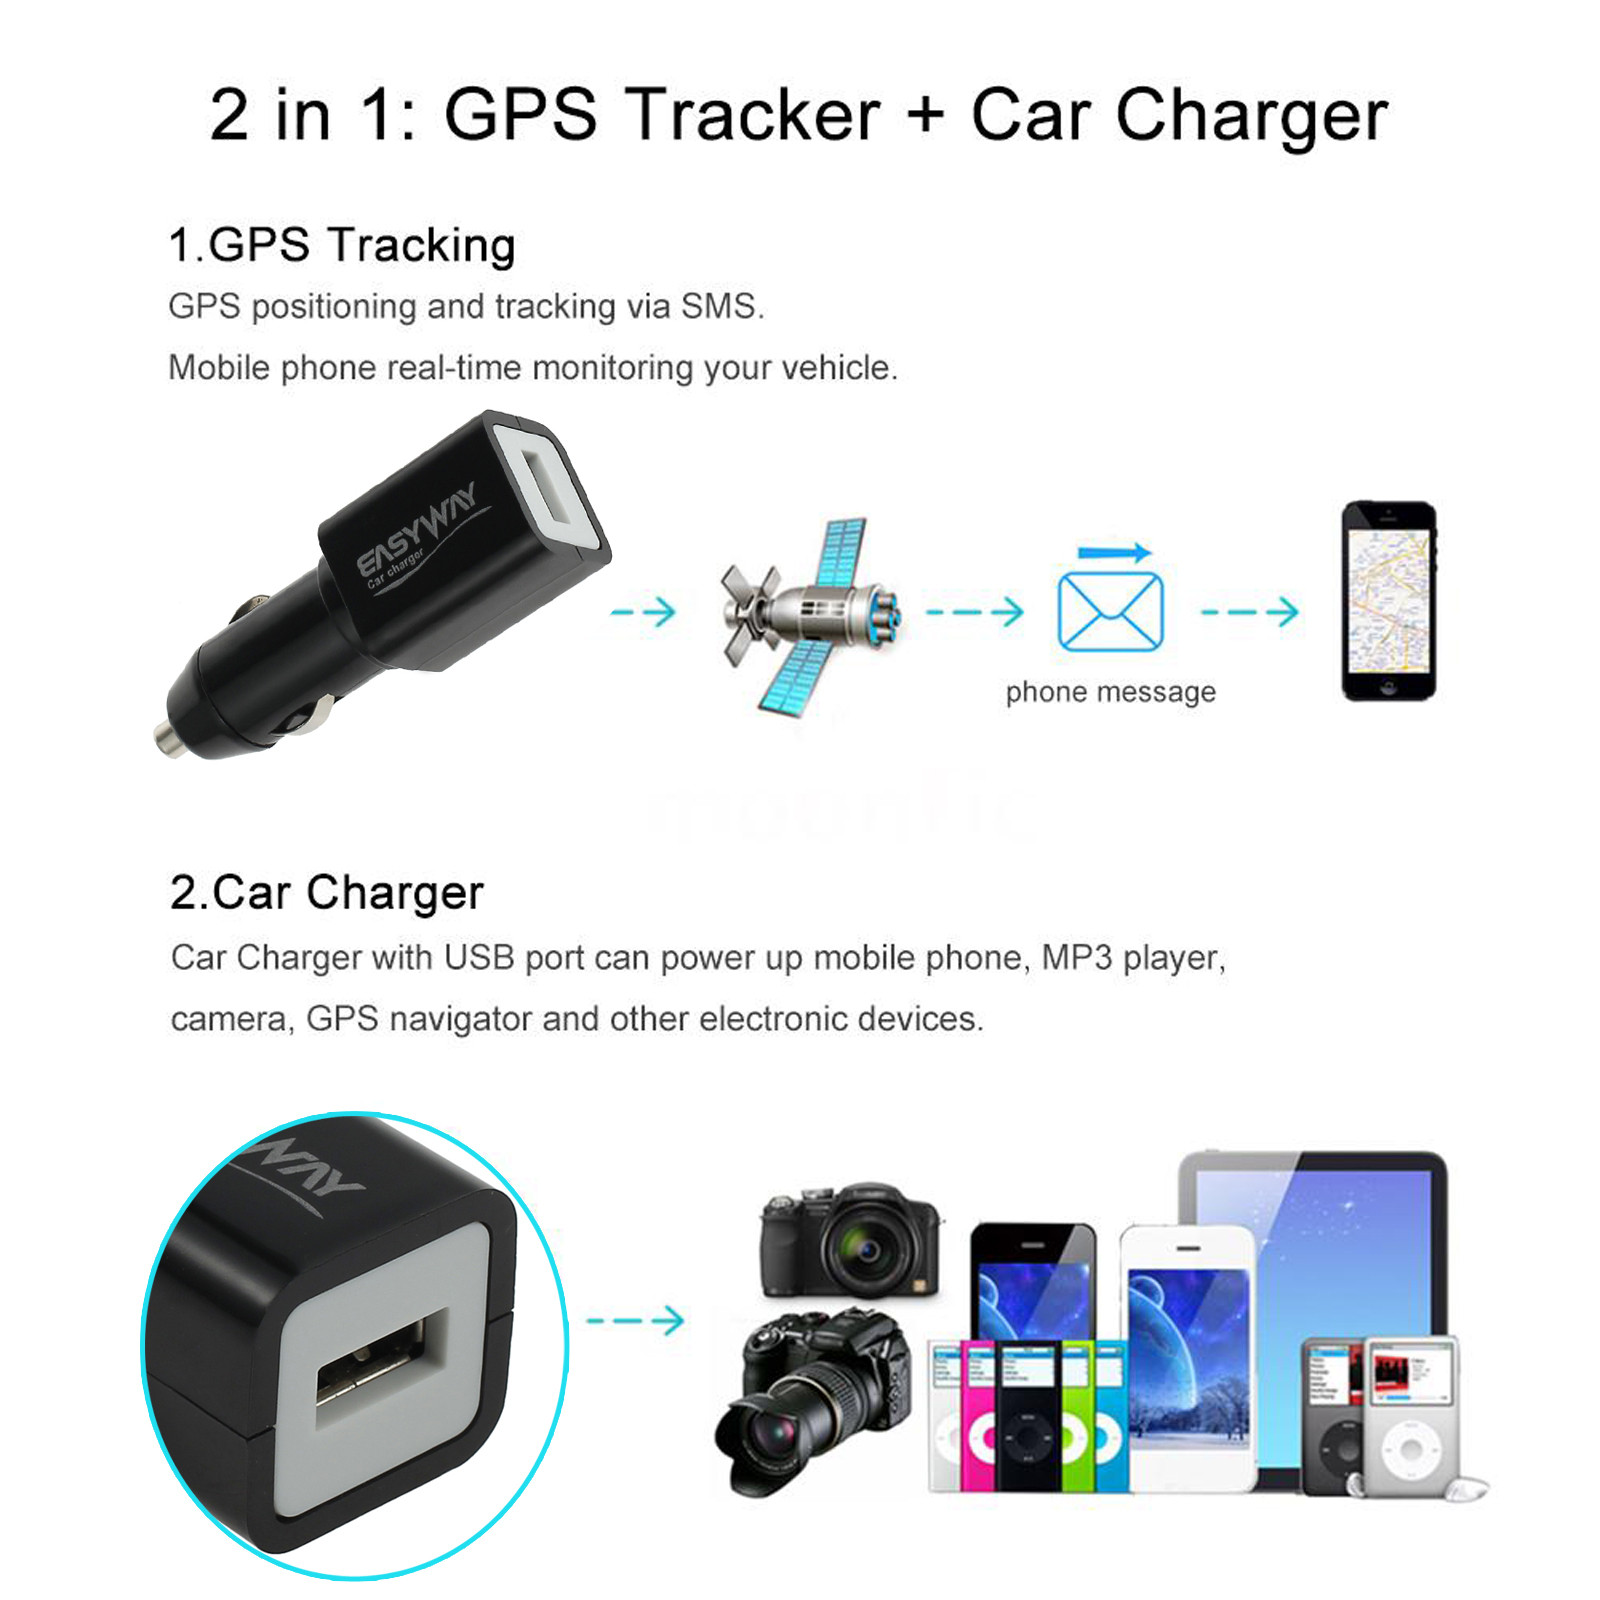 Car Charger With Usb Port Can Power Up Mobile Phone Mp Player Camera Gps Navigator And Other Similar Electronic Devices